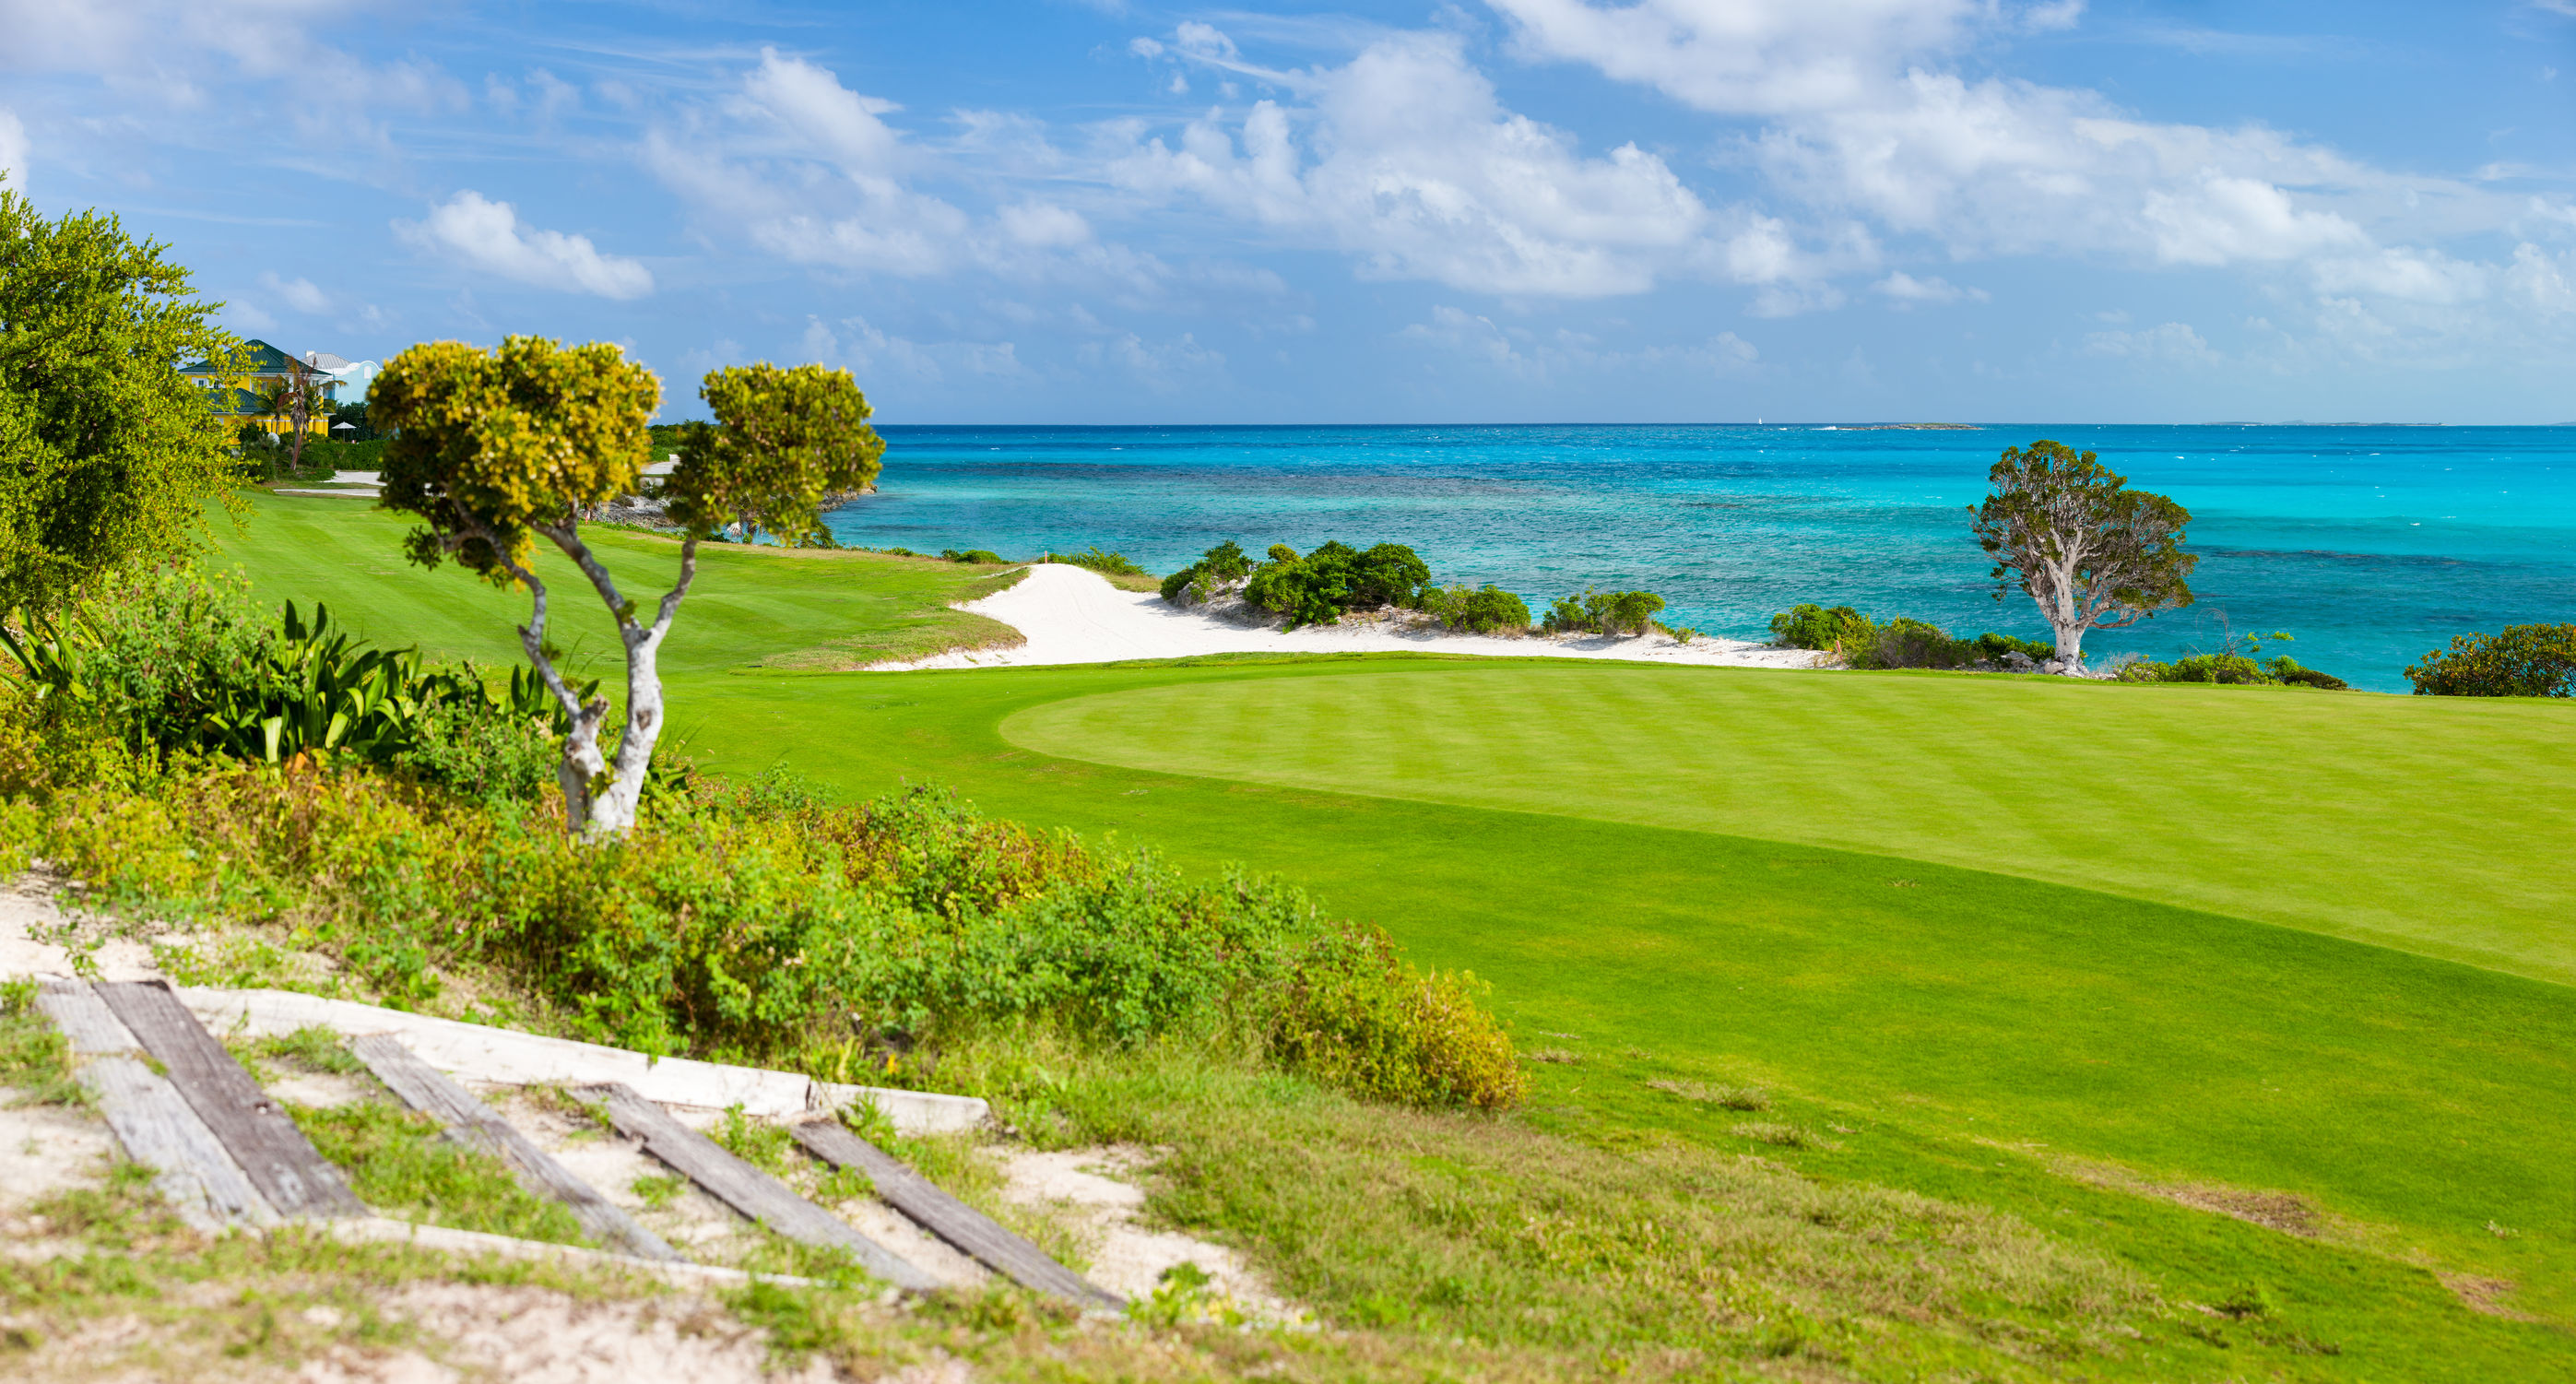 caribbean coastal golf course 123rf